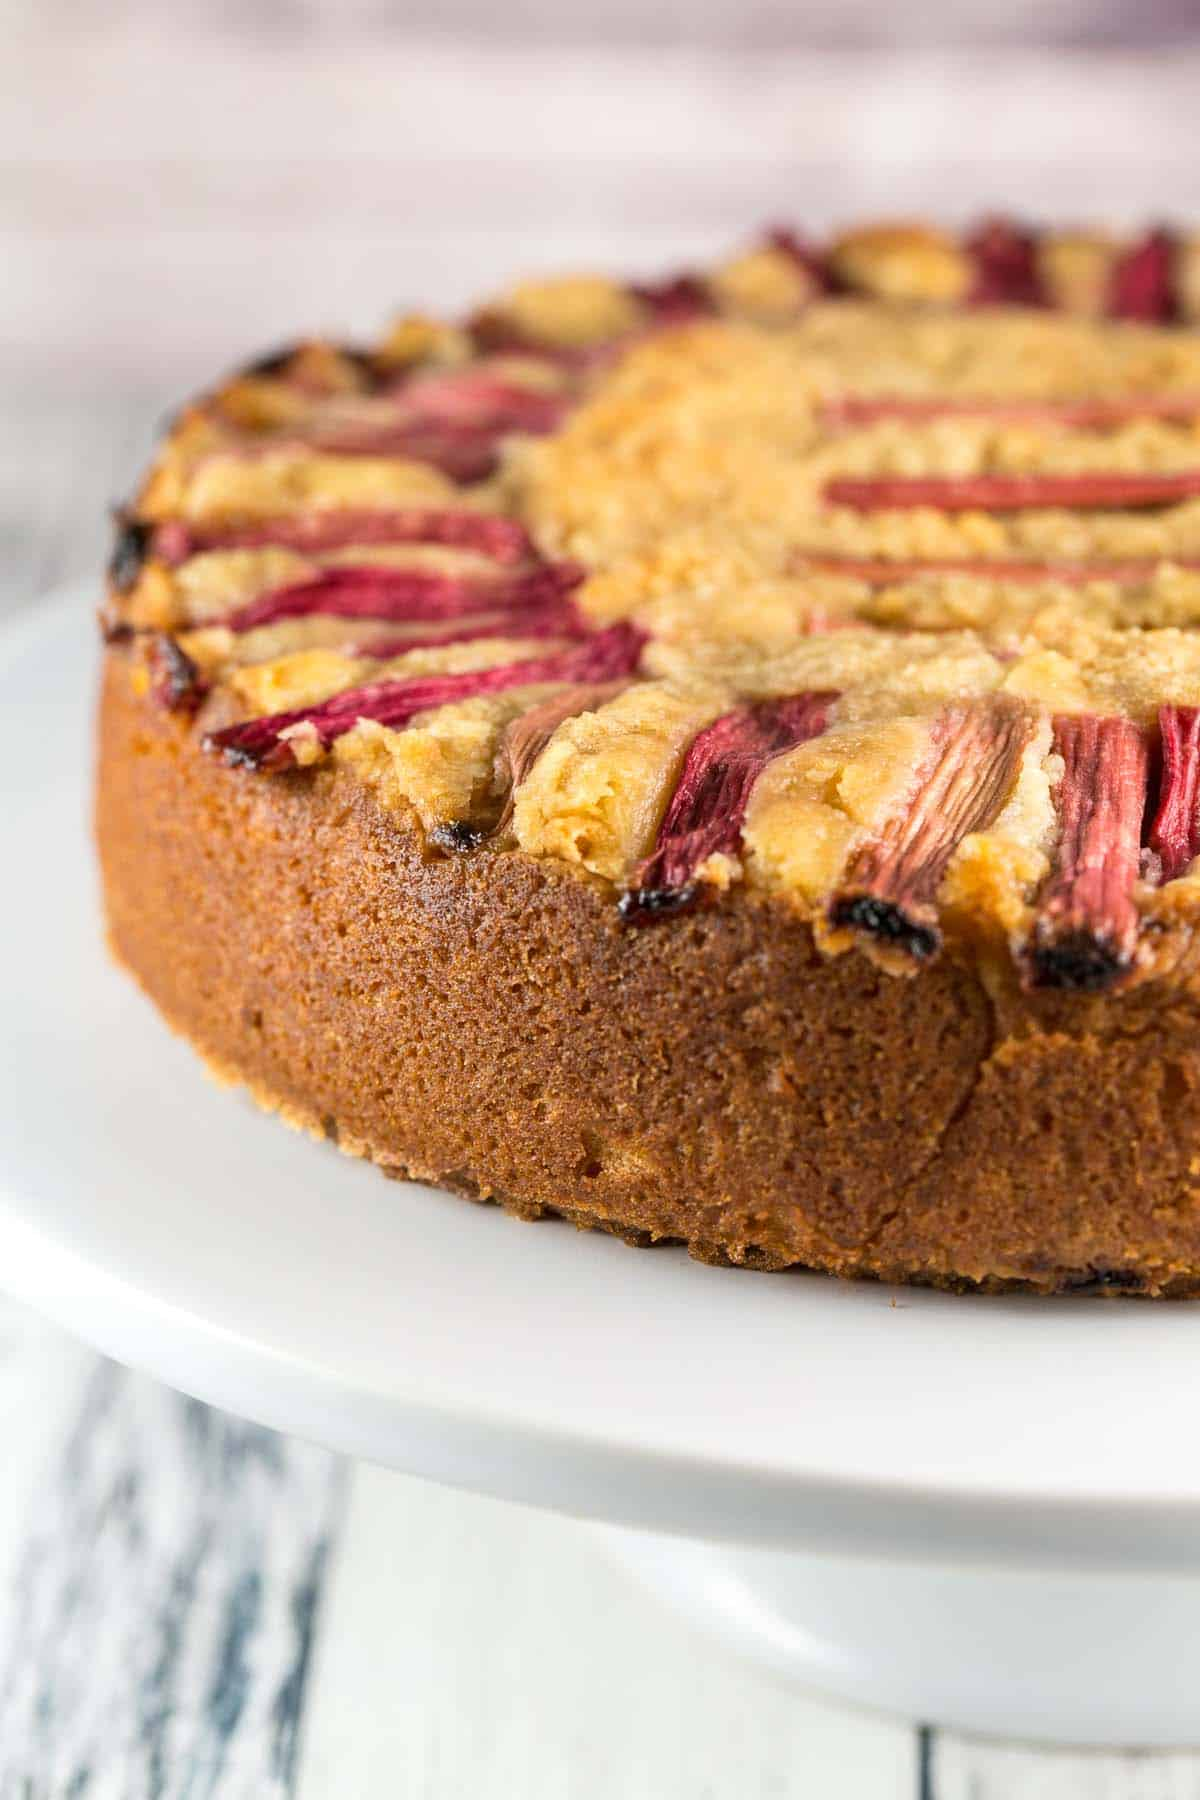 Almond Rhubarb Cake: a light and fluffy almond cake filled with sliced rhubarb. Top with ice cream and rhubarb syrup for an extra treat! {Bunsen Burner Bakery} [ad] #rhubarb #almond #cake #coffeecake